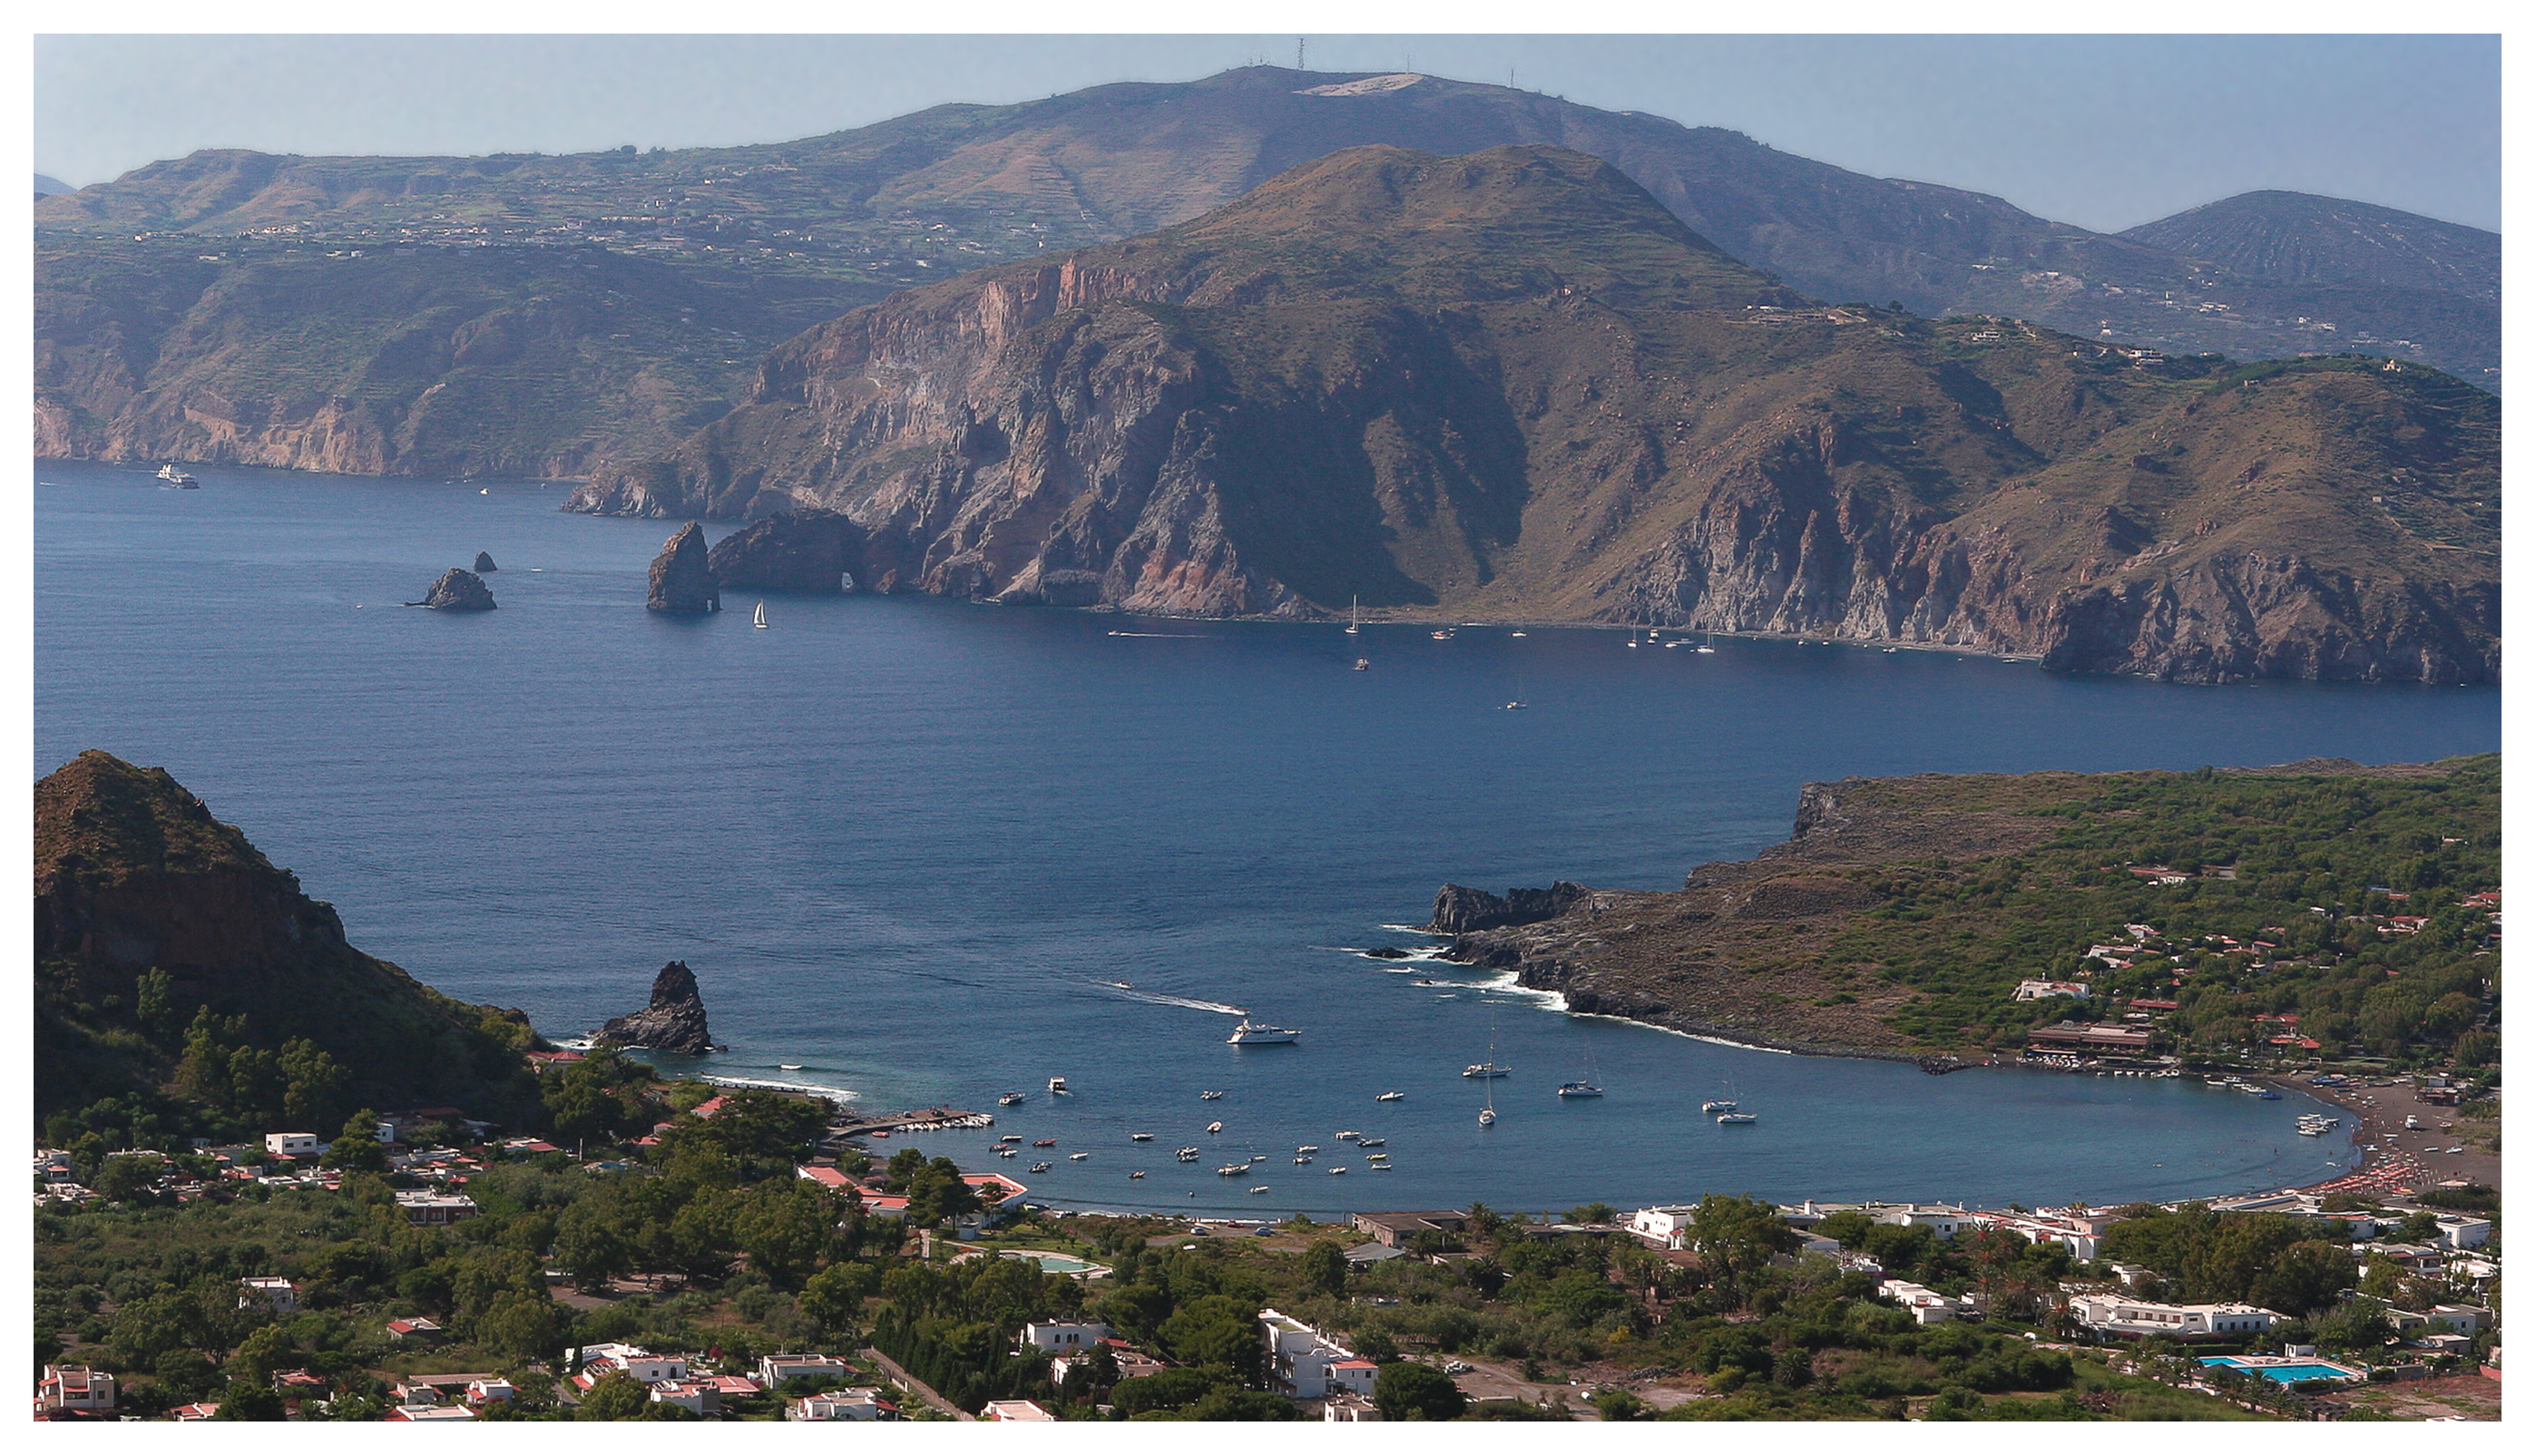 Panoramic views accross to the island of Lipari from the crater at Vulcano, Aeolean Islands, Sicily